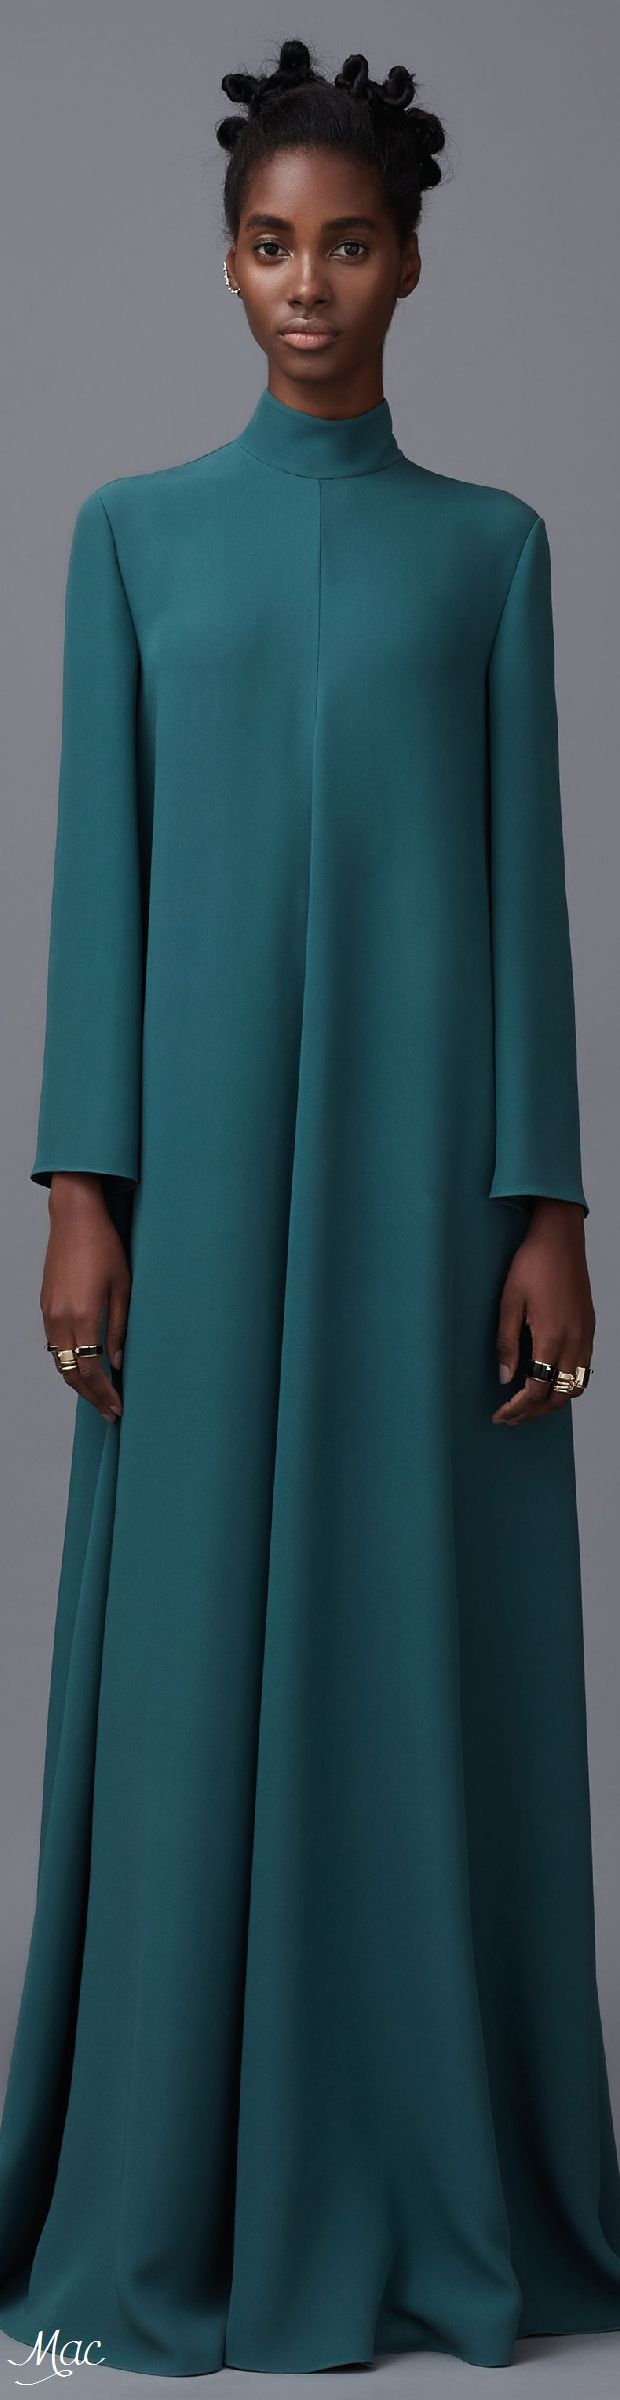 Pre-Fall 2016 Valentino - with pink hijab! Beauty! <3